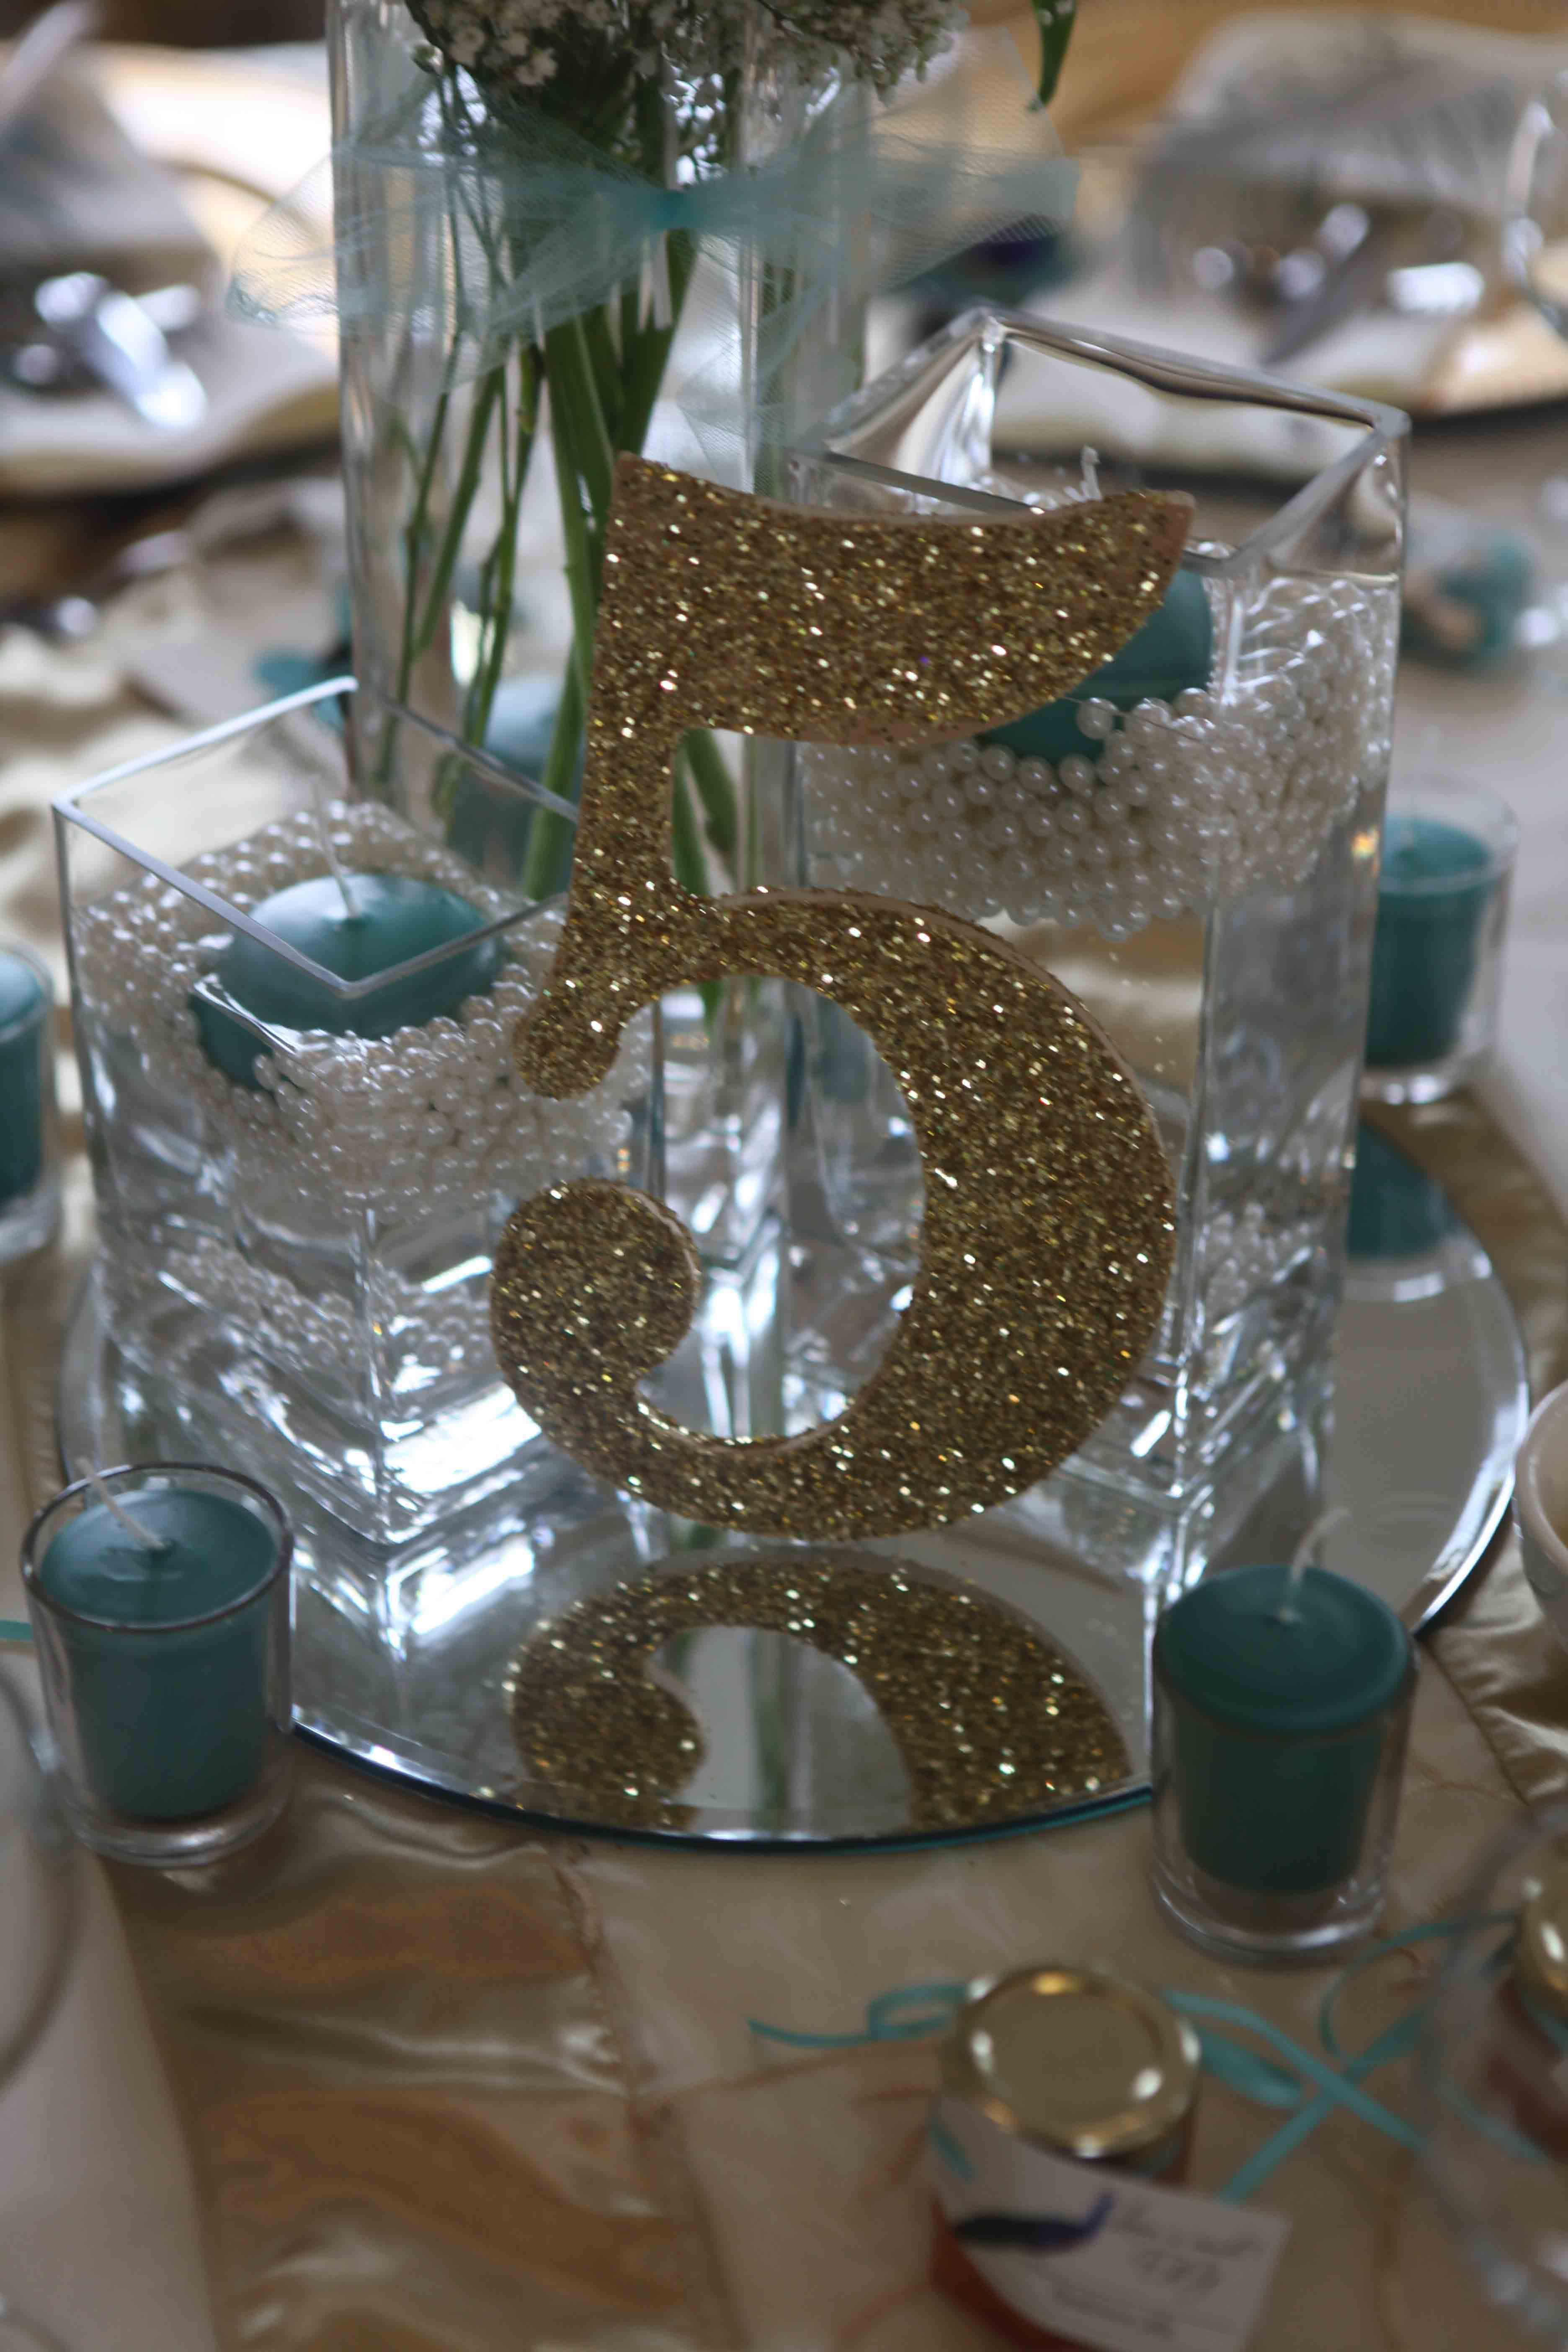 Table decor centerpieces included rectangular glass vases